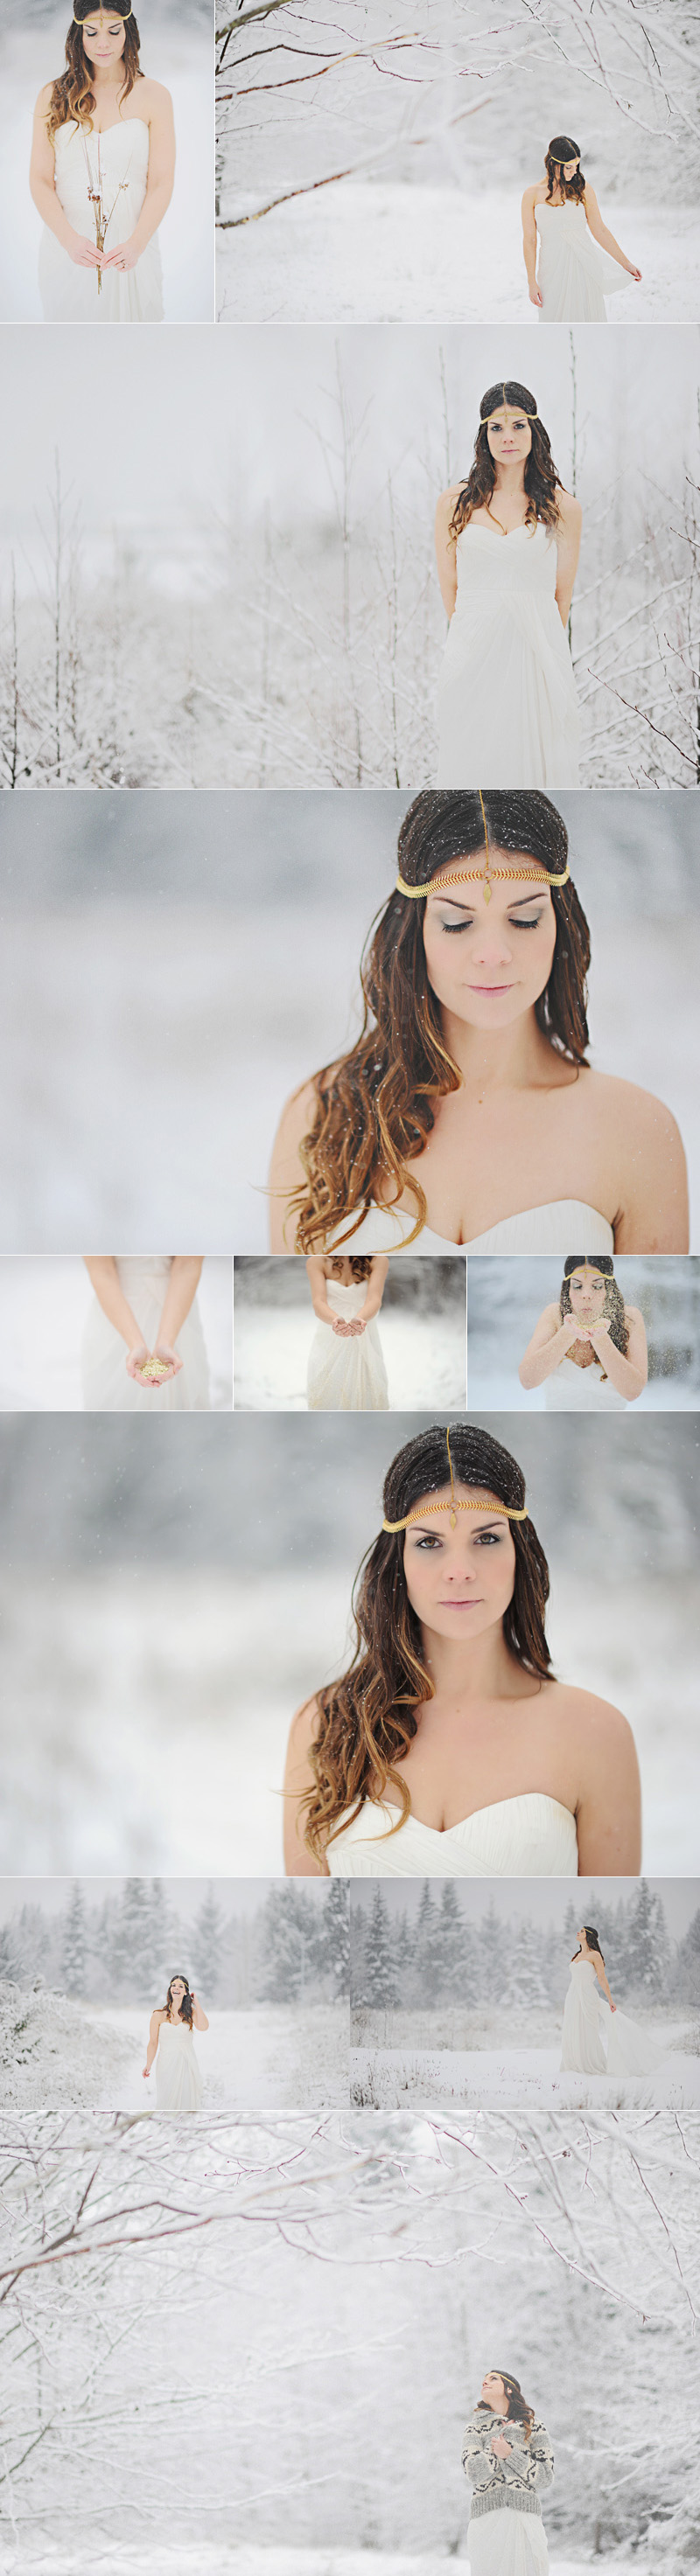 snowy bridal photo, bride in snow, gold glitter bride, headpiece